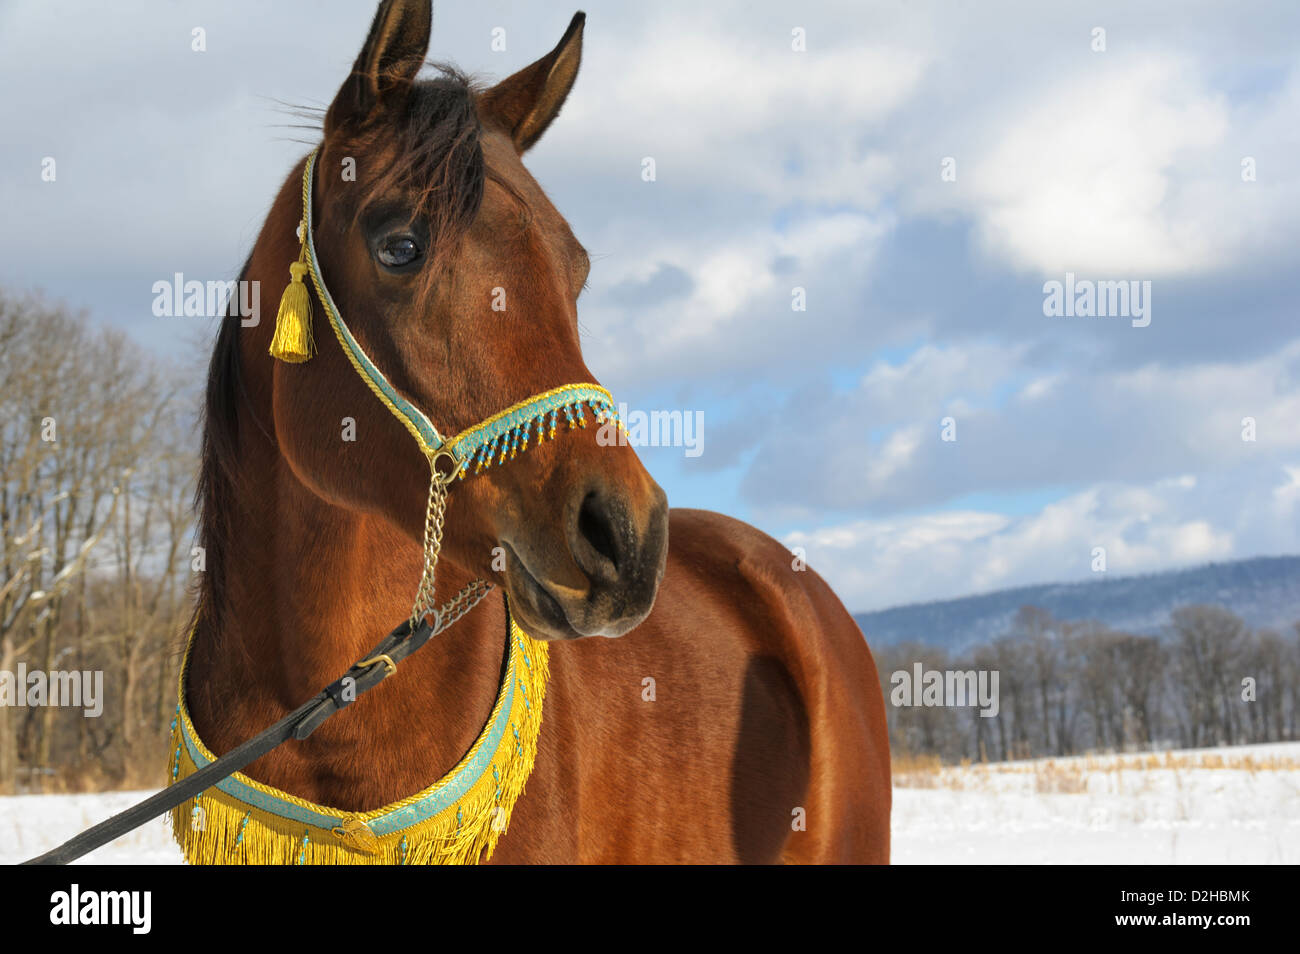 Horse looking into the distance in winter landscape, a brown Arabian stallion dressed in decorative halter and collar. - Stock Image